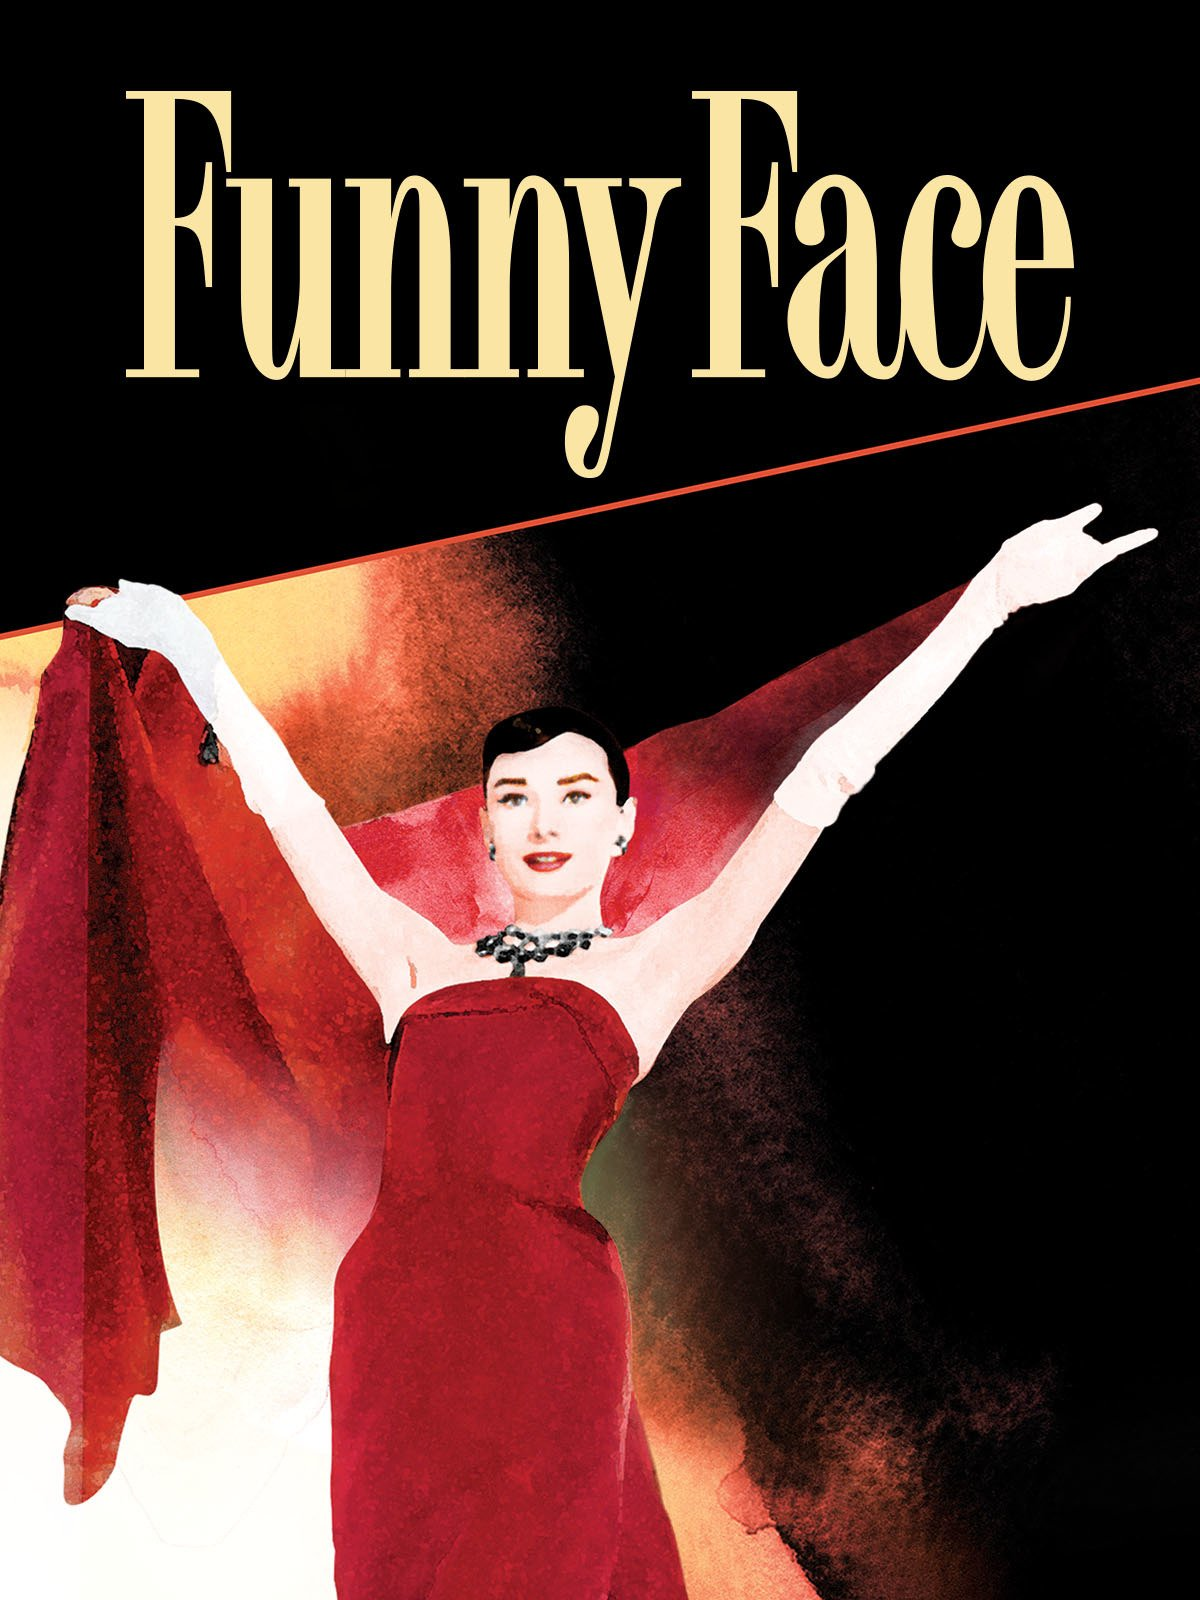 Funny face movie streaming free